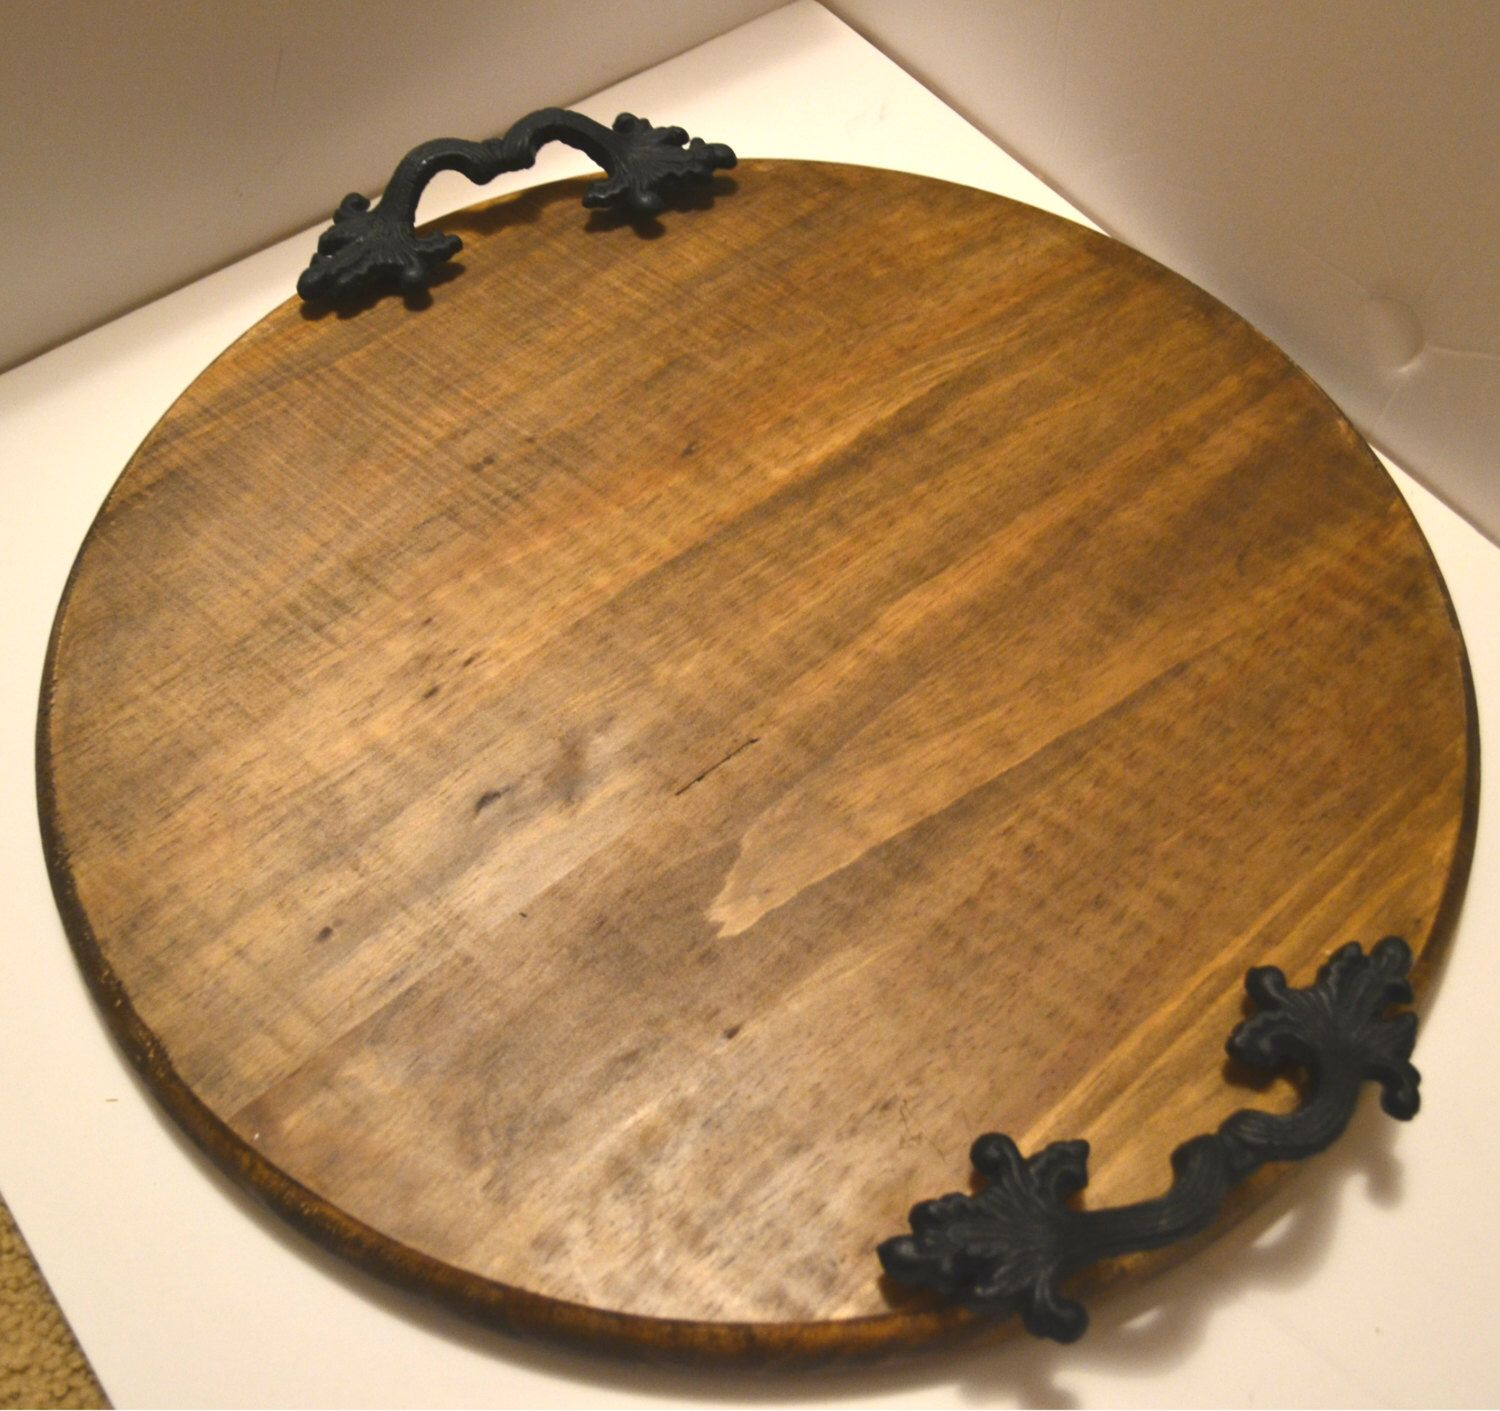 Large Wooden Coffee Table Tray: Best 25+ Large Wooden Tray Ideas On Pinterest